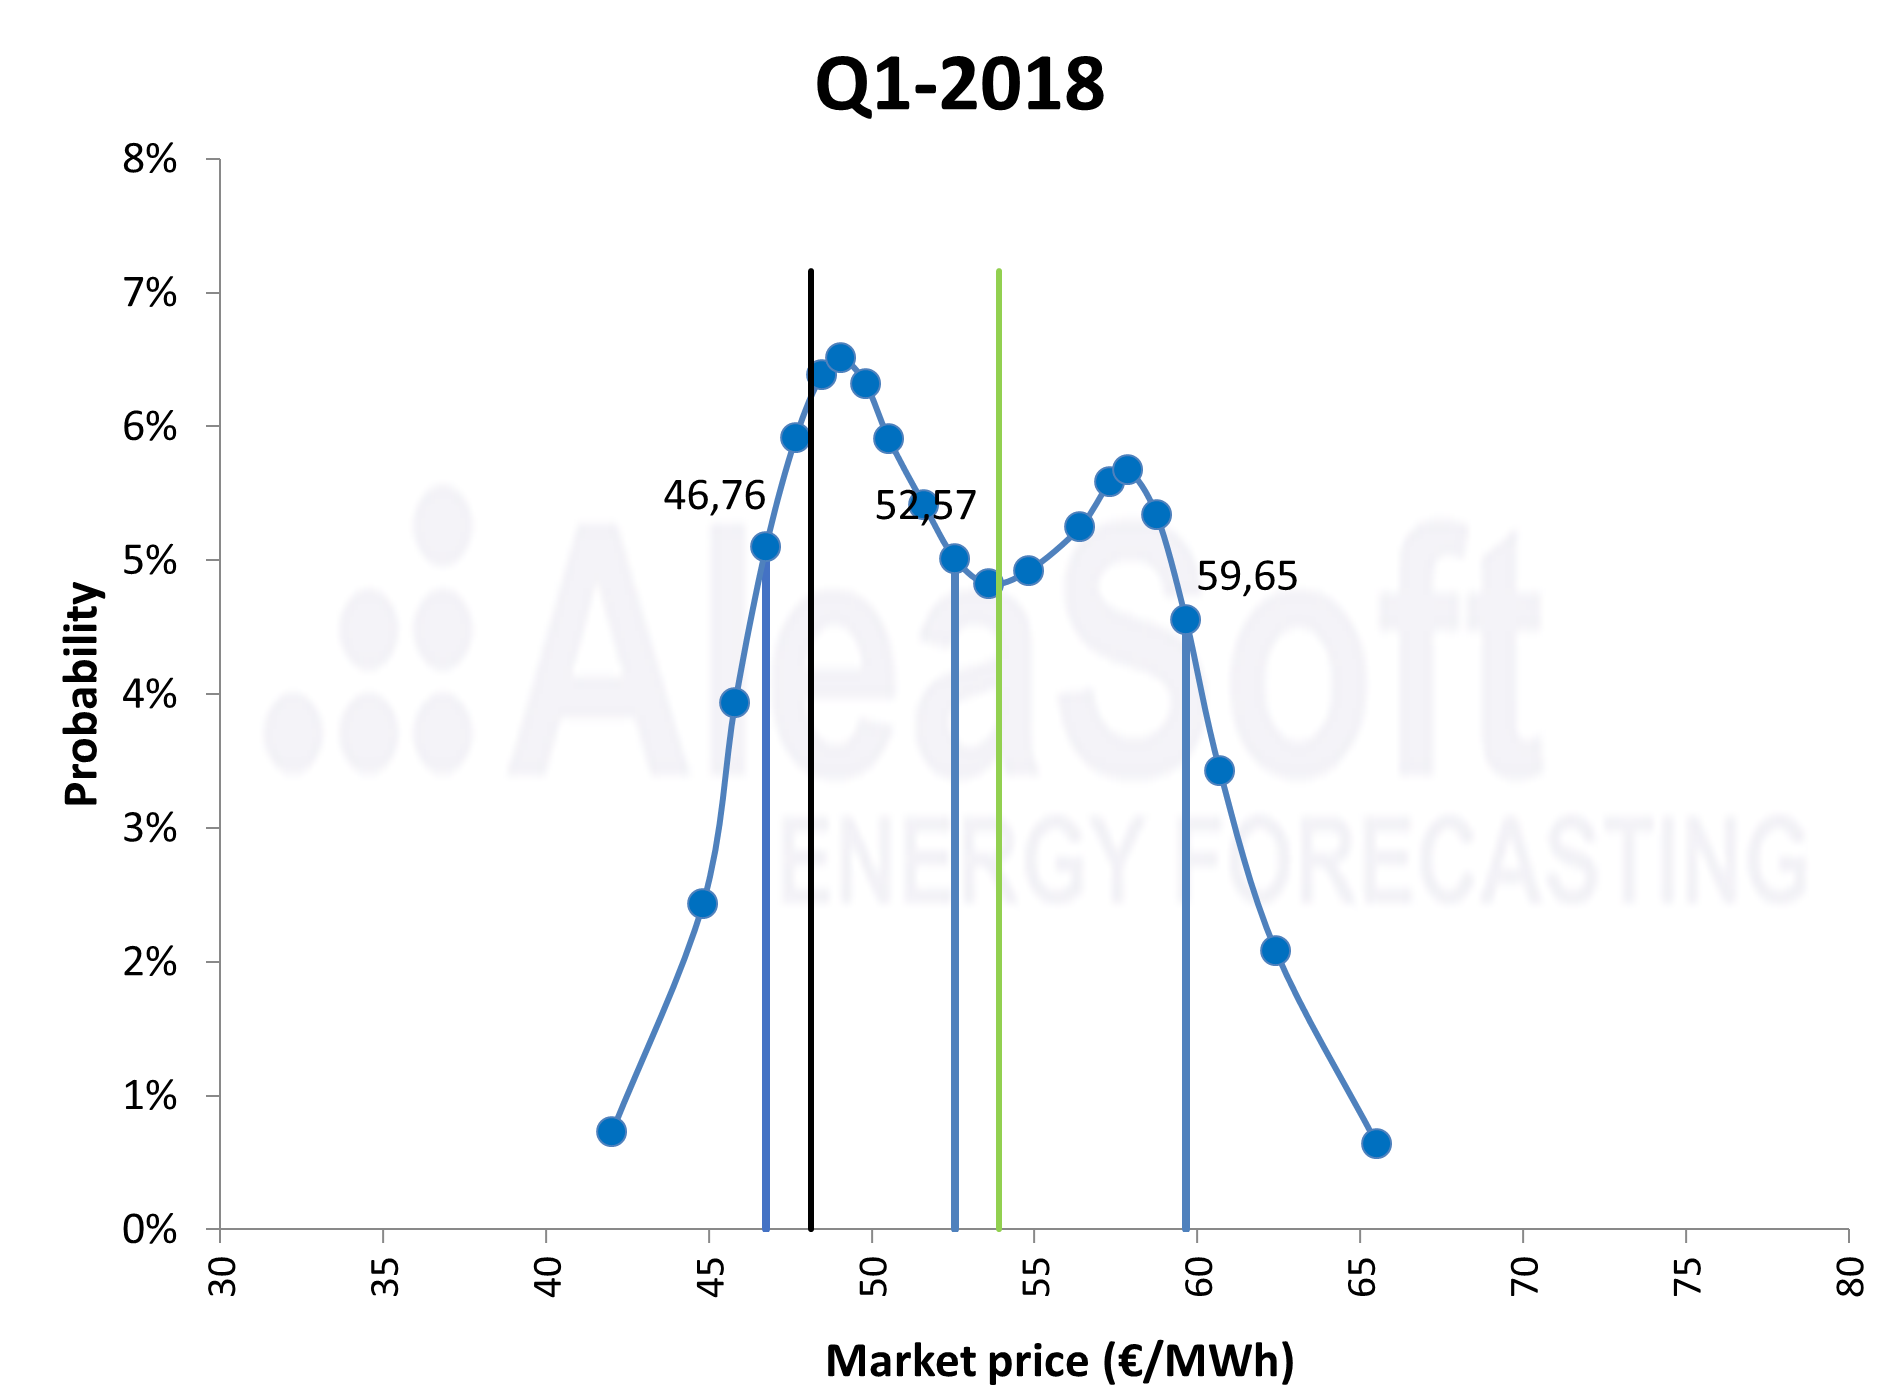 AleaSoft - Probability distribution forecast electricity market price Q1 2018